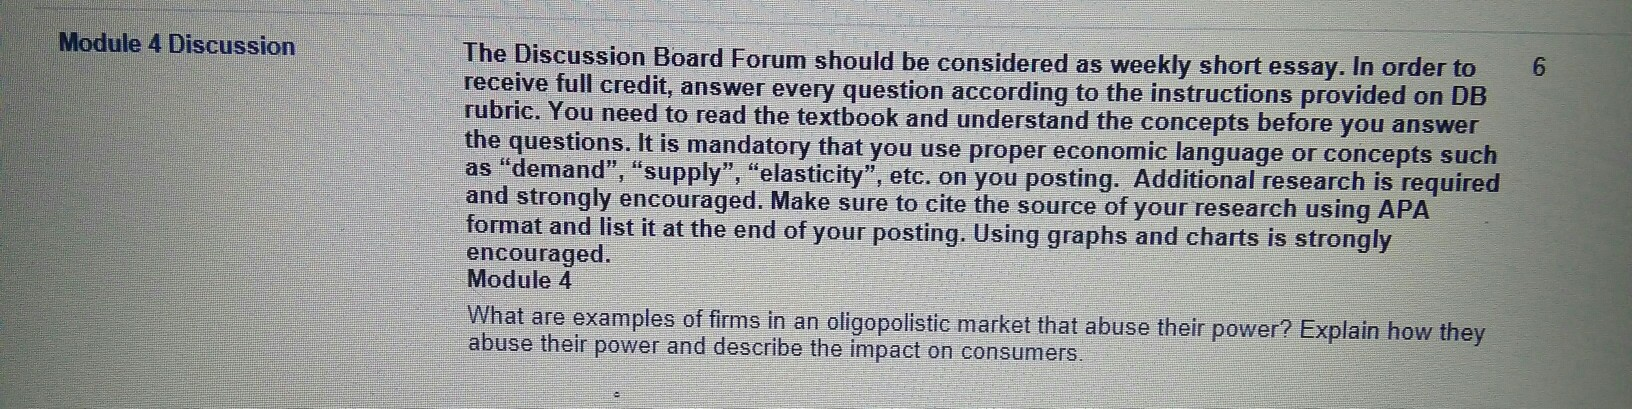 discussion board forums instructions bibl105 Evan101_8wk_syllabus - evan 101 course syllabus course discussion_board_forums_instructions(2) bibl105_8wk_syllabus(4.